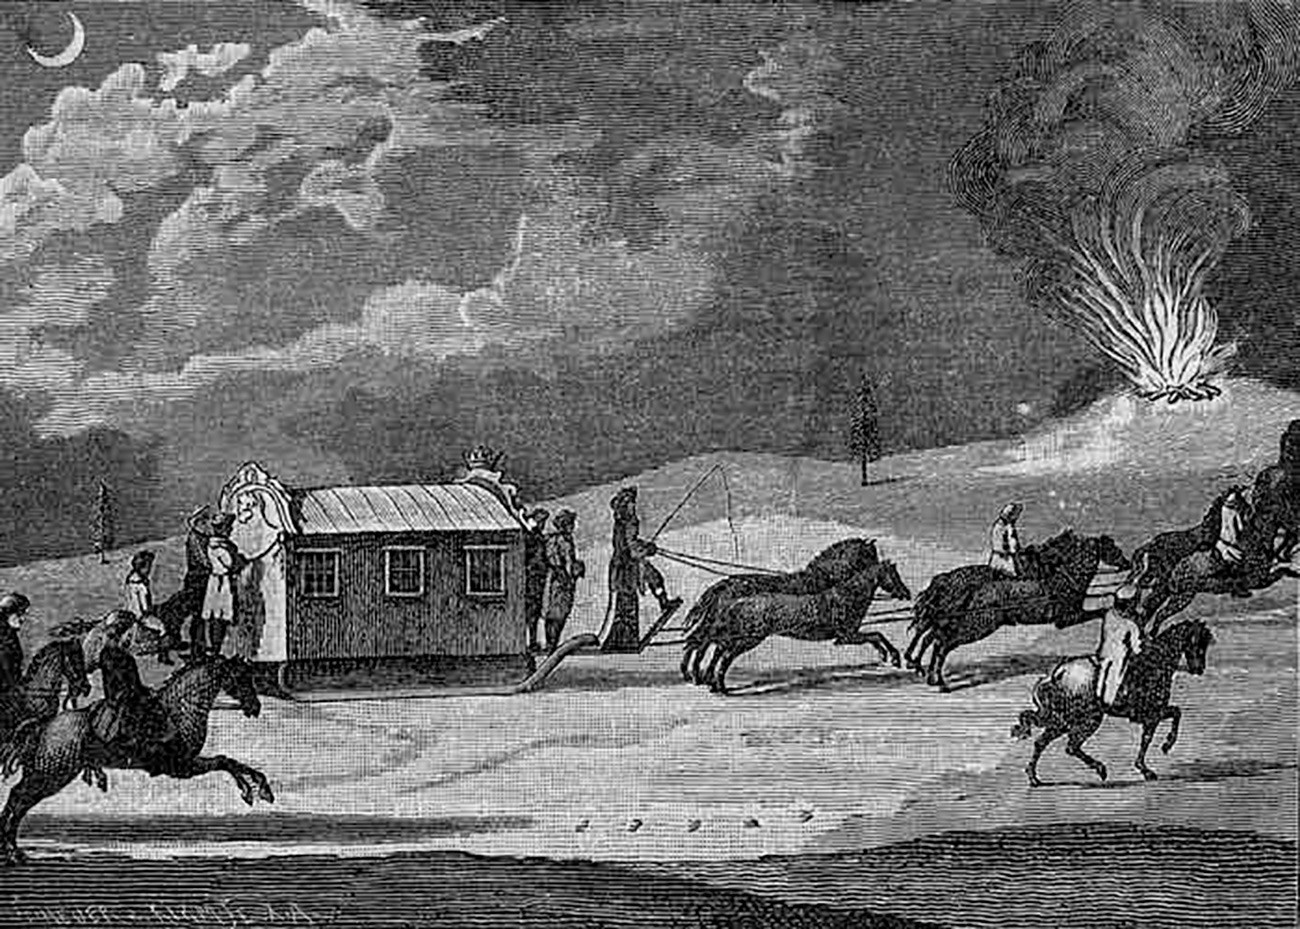 Catherine's imperial carriage during her Crimea journey in 1787